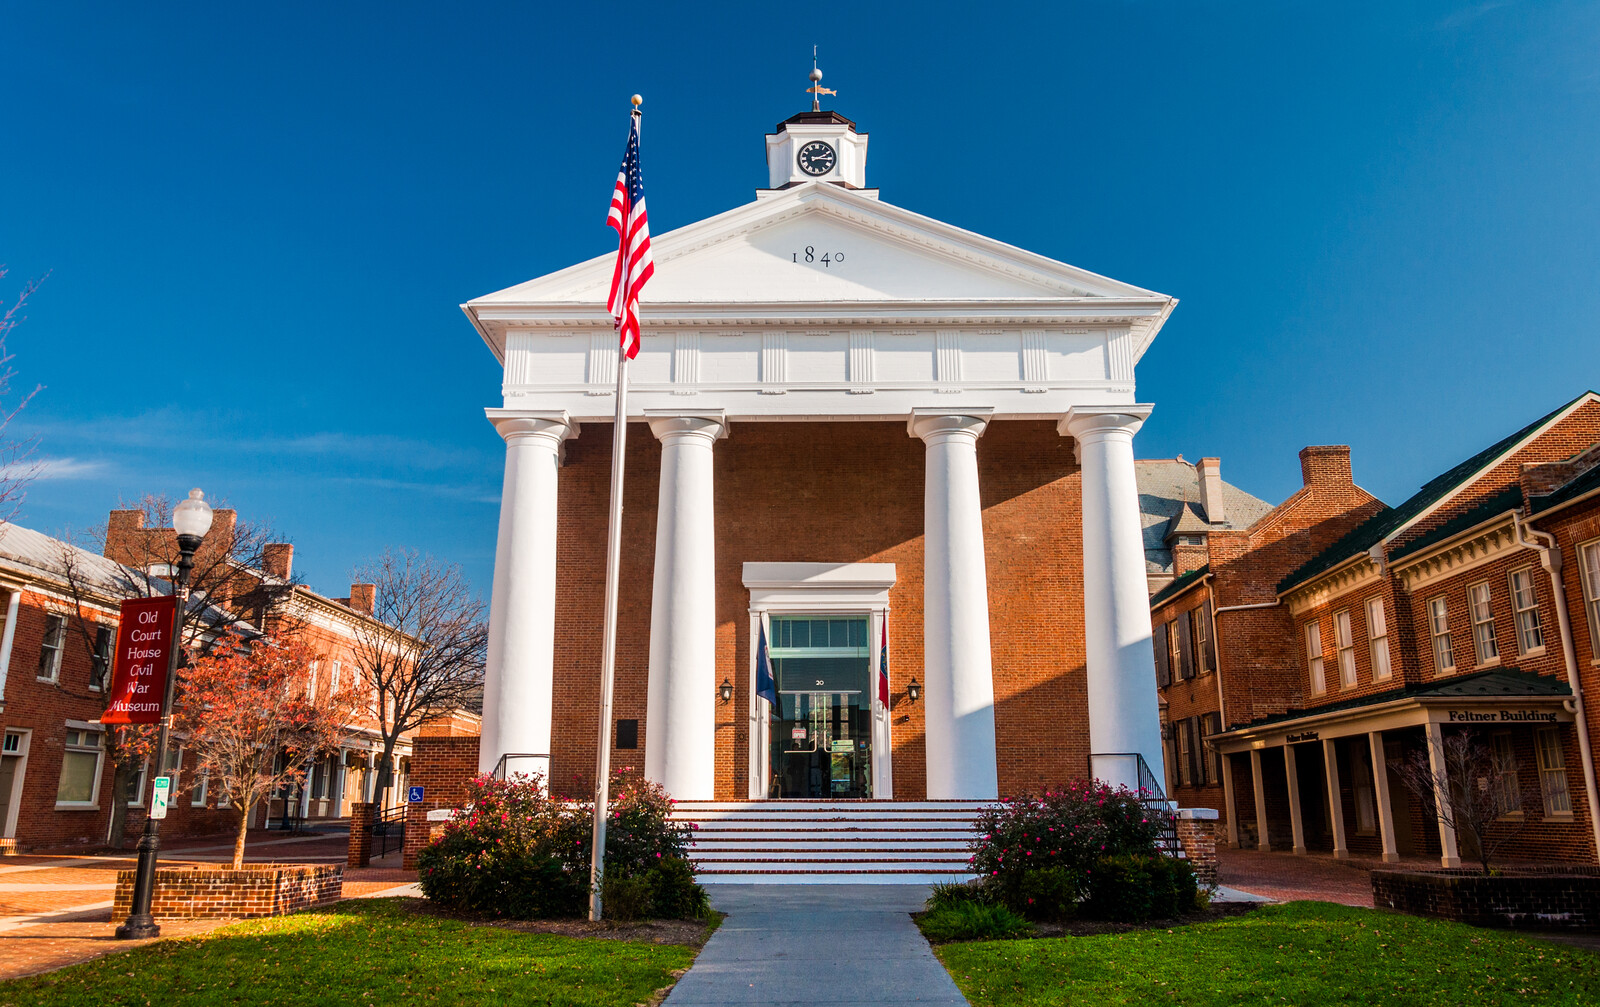 The courthouse in Winchester Virginia, large brick building with white pillar entrance and nearby brick buildings